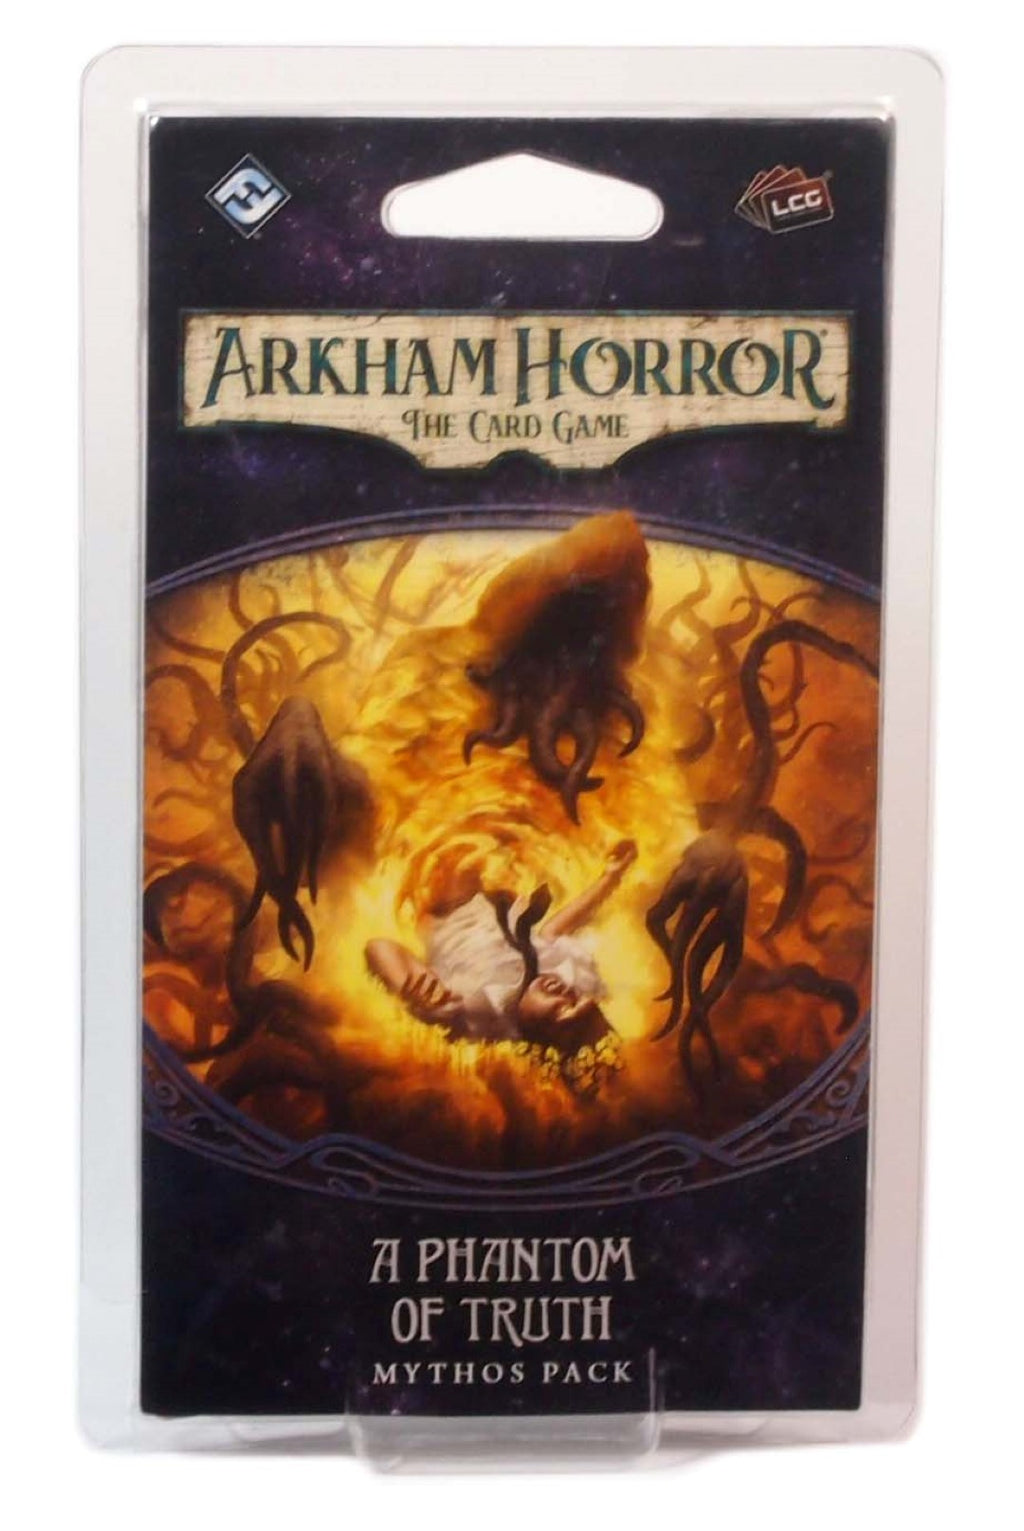 Arkham Horror LCG A Phantom of Truth Mythos Pack